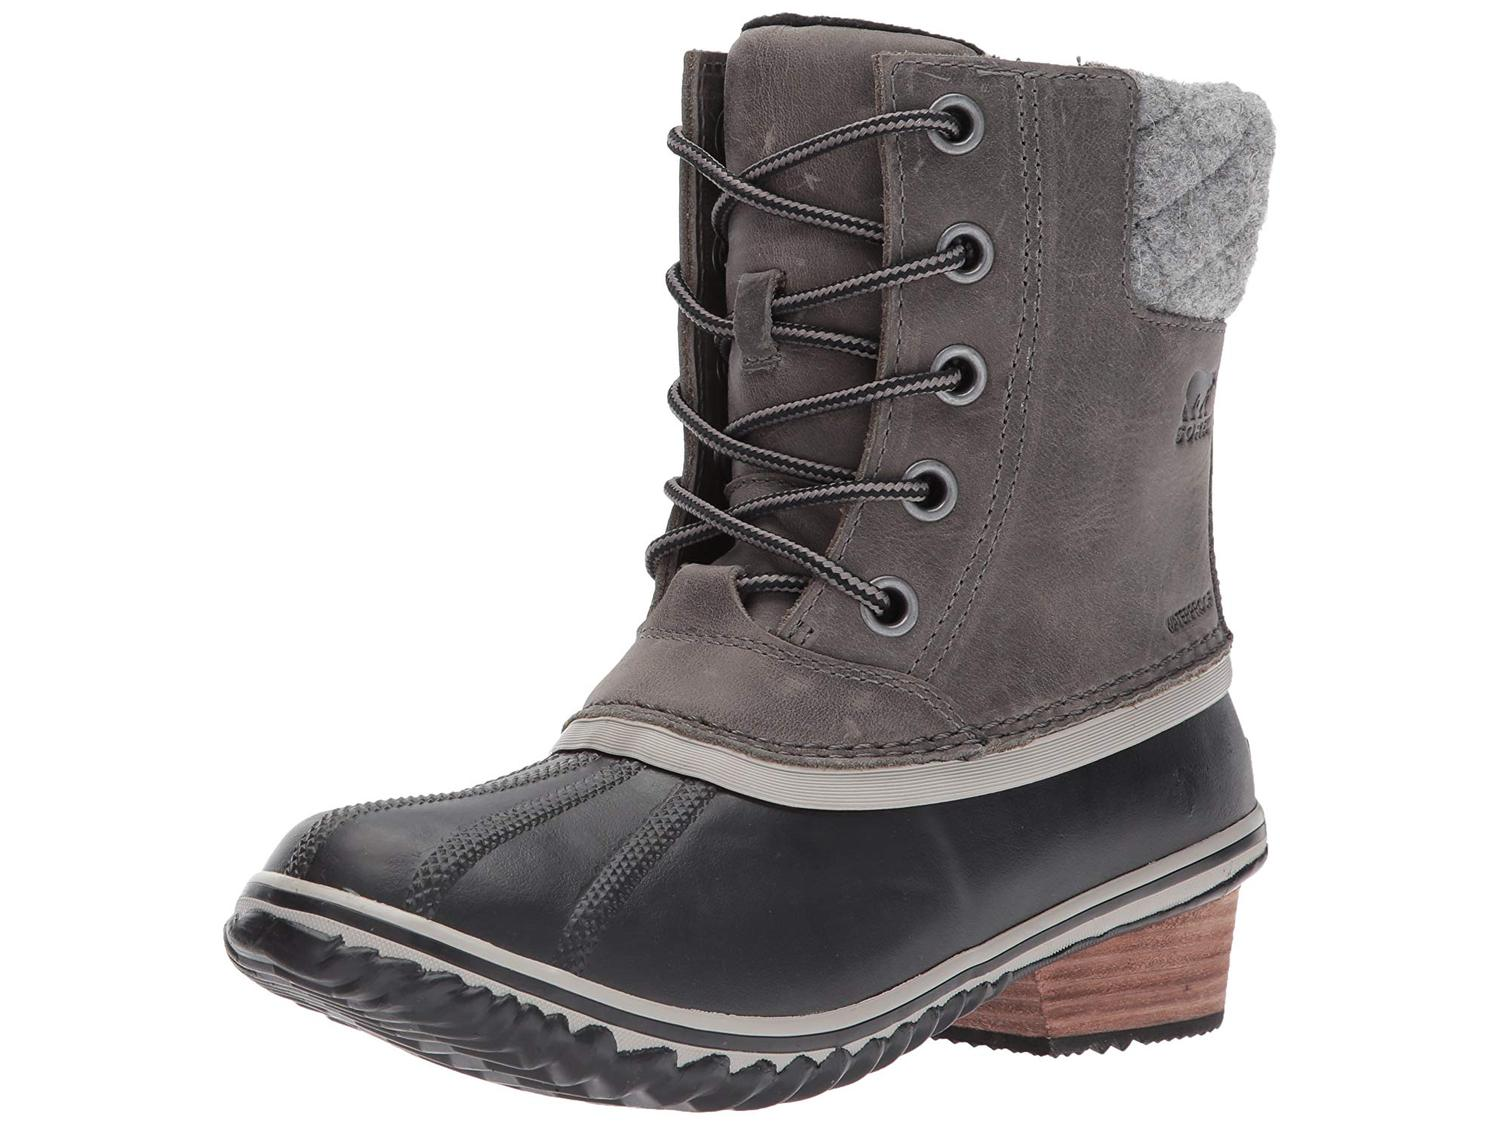 Sorel Women's Slimpack II Waterproof Boots (various colors/sizes)